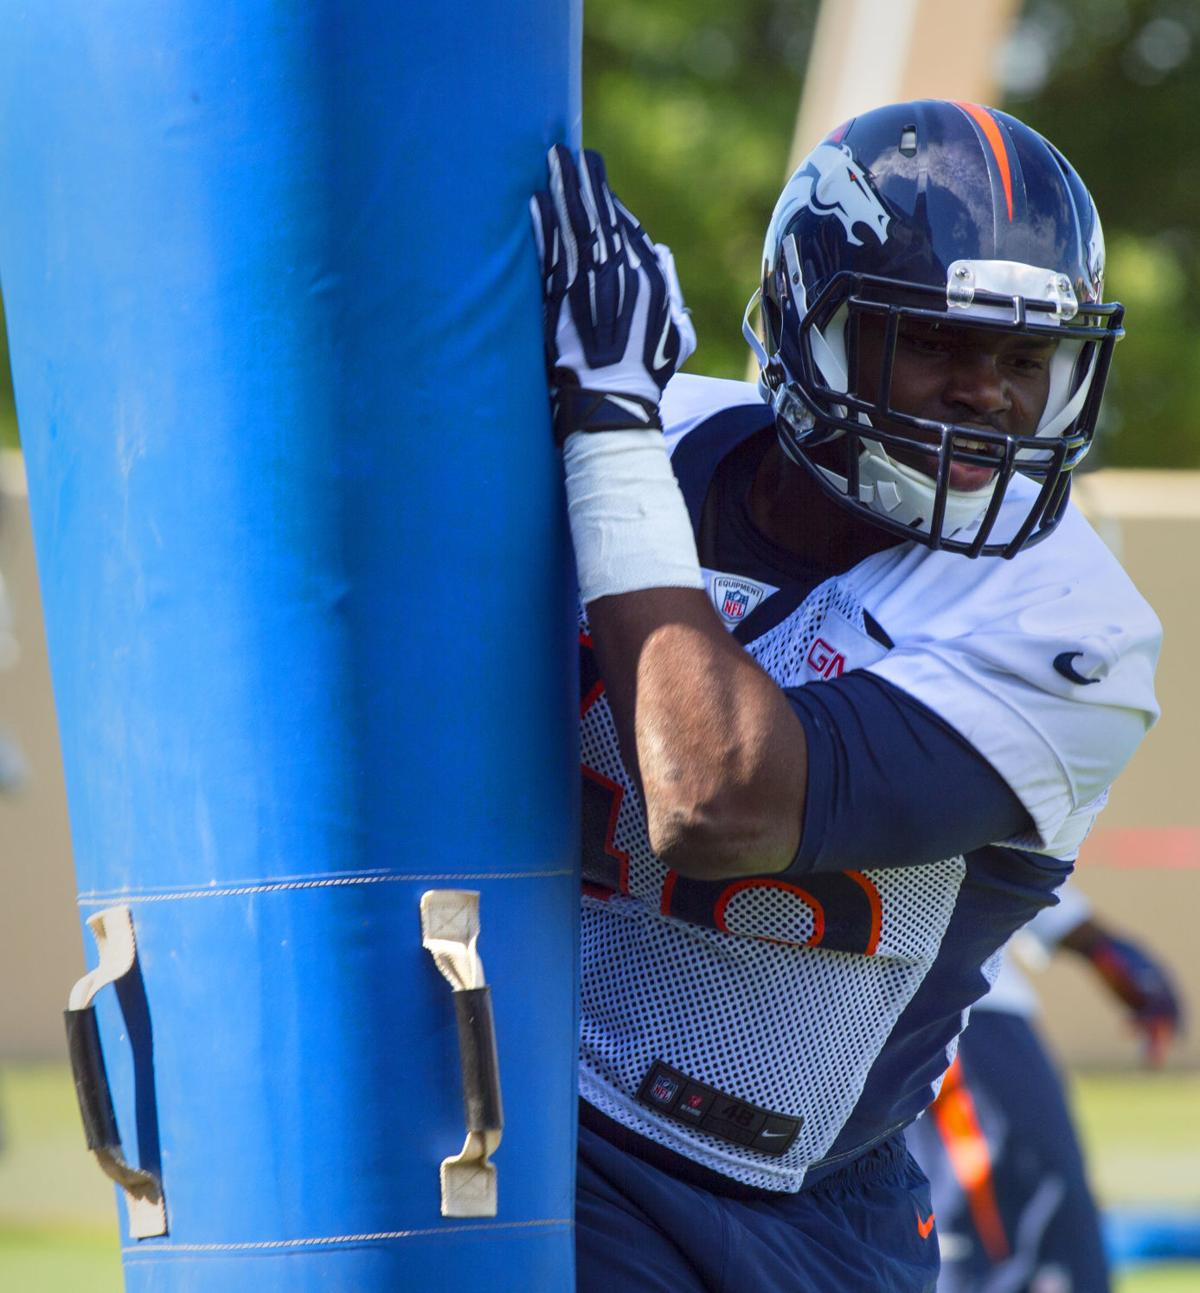 Rookie linebacker Shaquil Barrett from Colorado State runs through drills Thursday, July 24, 2014, during the first day of training camp at the Broncos Headquarters in Englewood, Colo. (The Gazette, Christian Murdock)